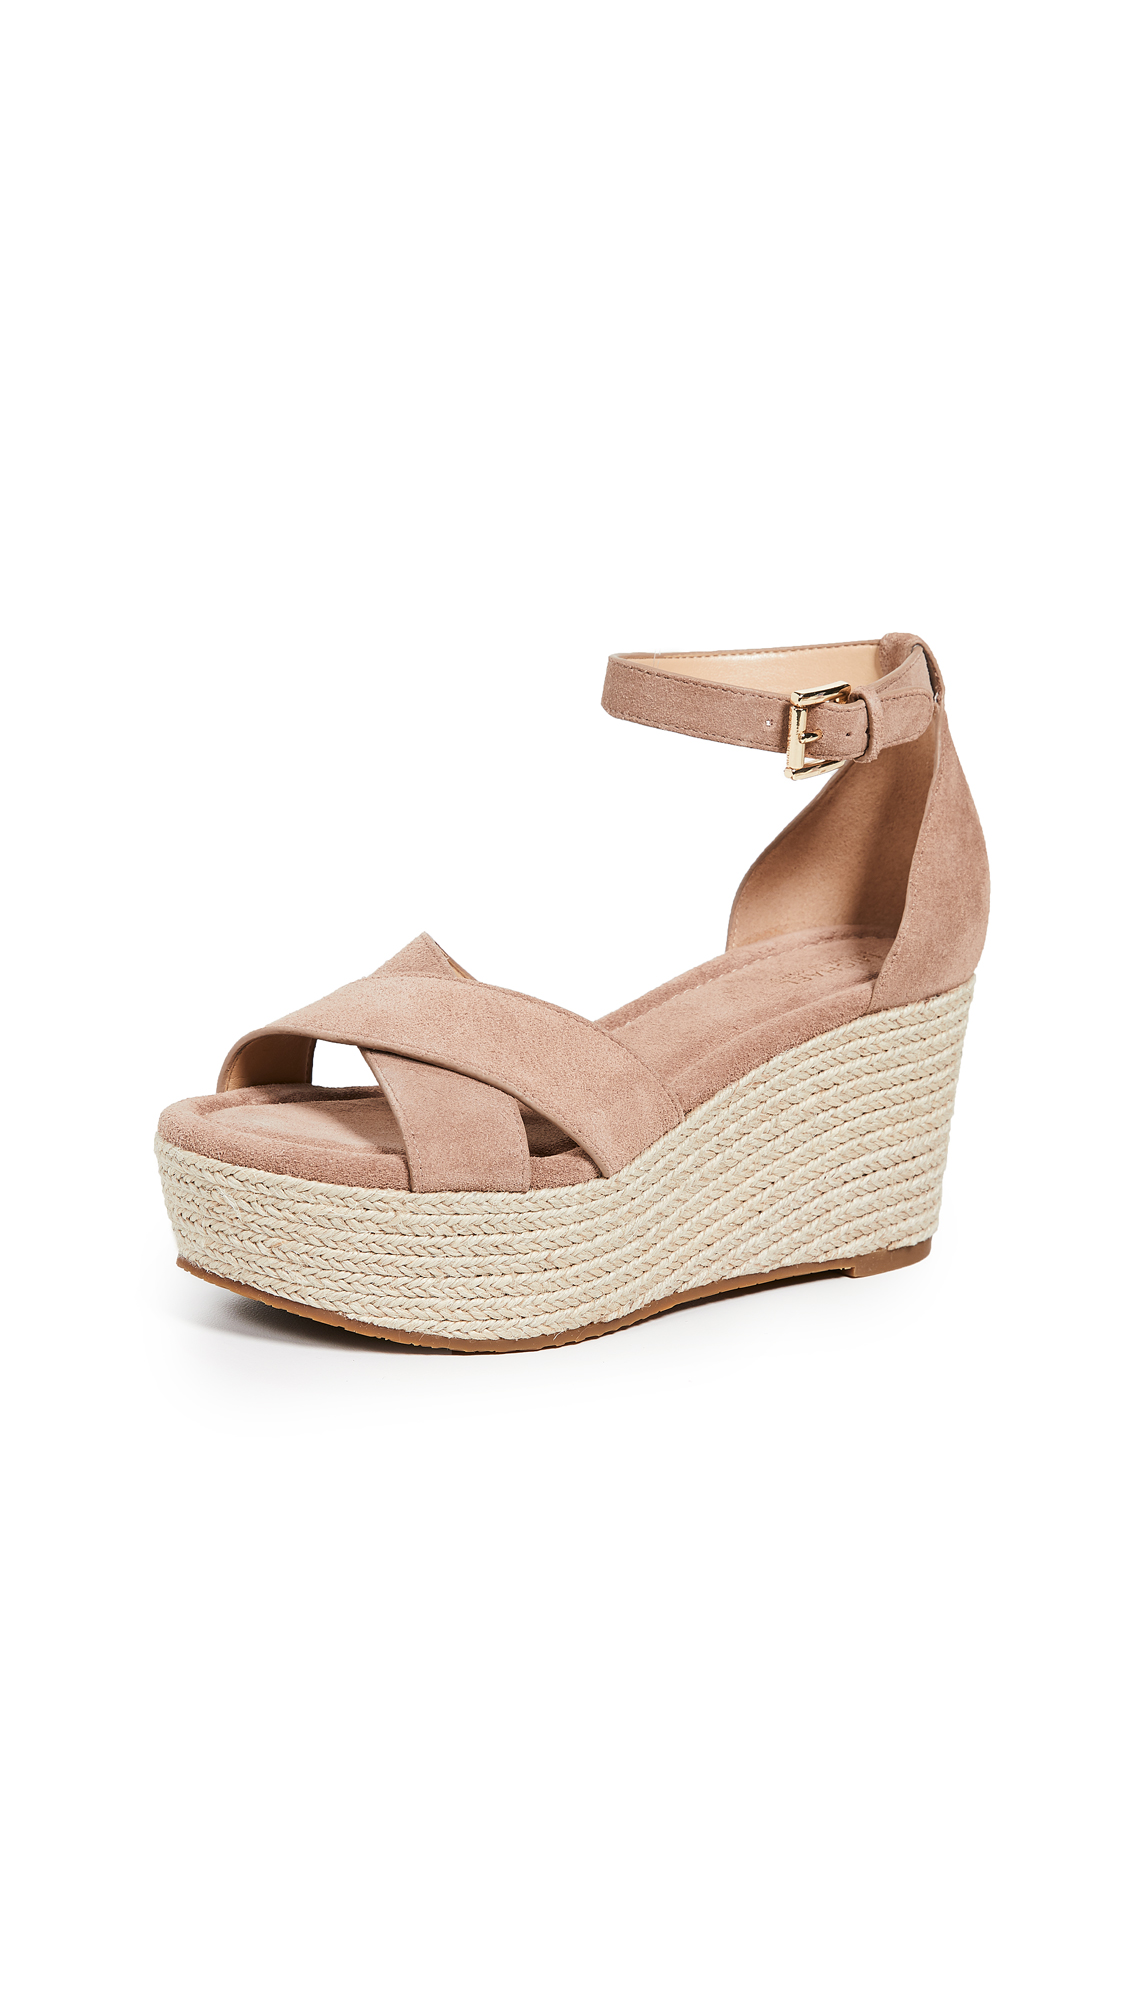 MICHAEL Michael Kors Desiree Wedges - Dk Khaki